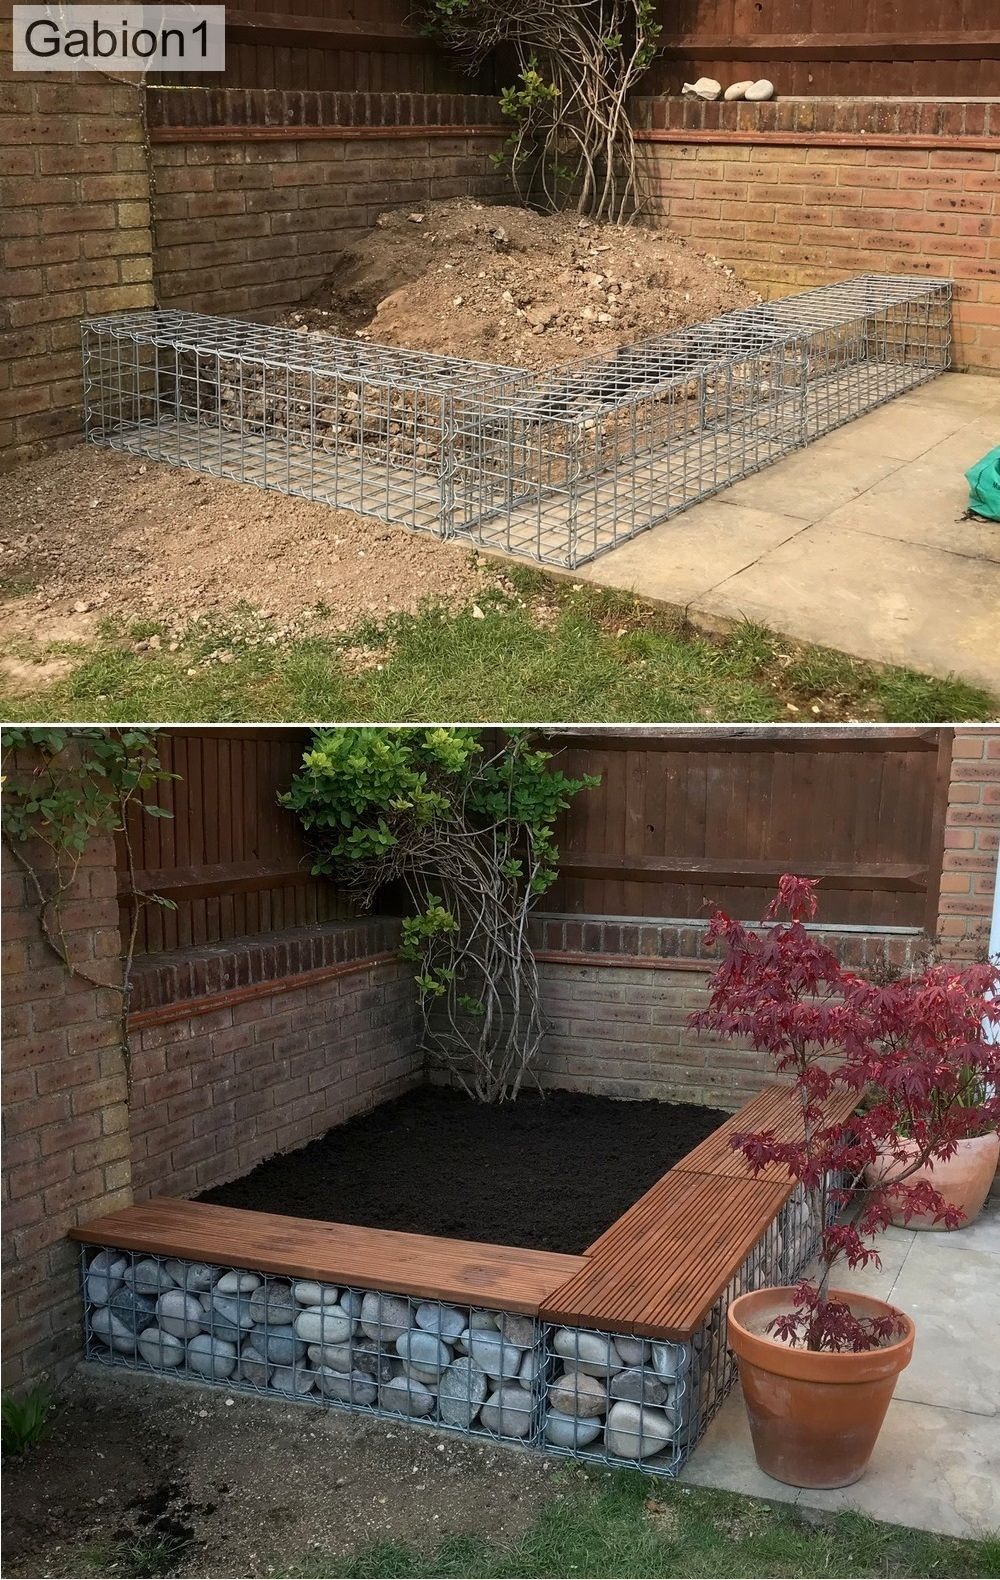 Gabion1 small planter wall (With images) | Terrace garden ...